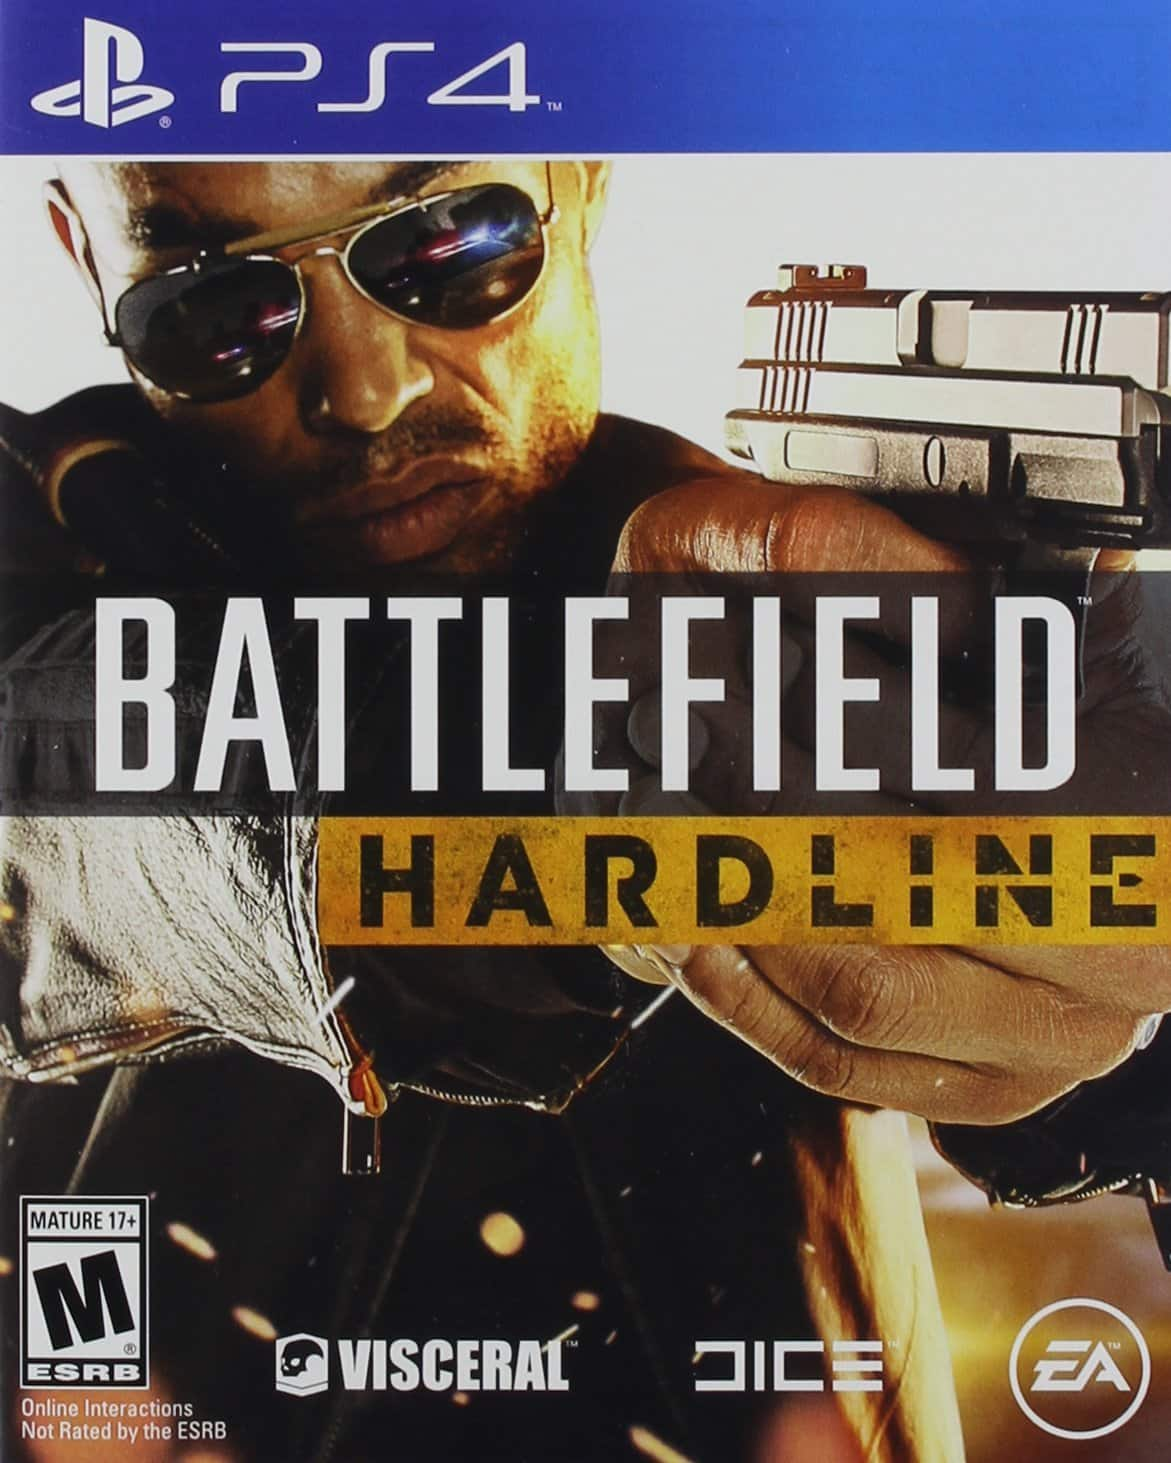 Used Game Sale: (PS4 or Xbox One) Battlefield: Hardline $10, NBA 2K15  $7 & More + Free S&H